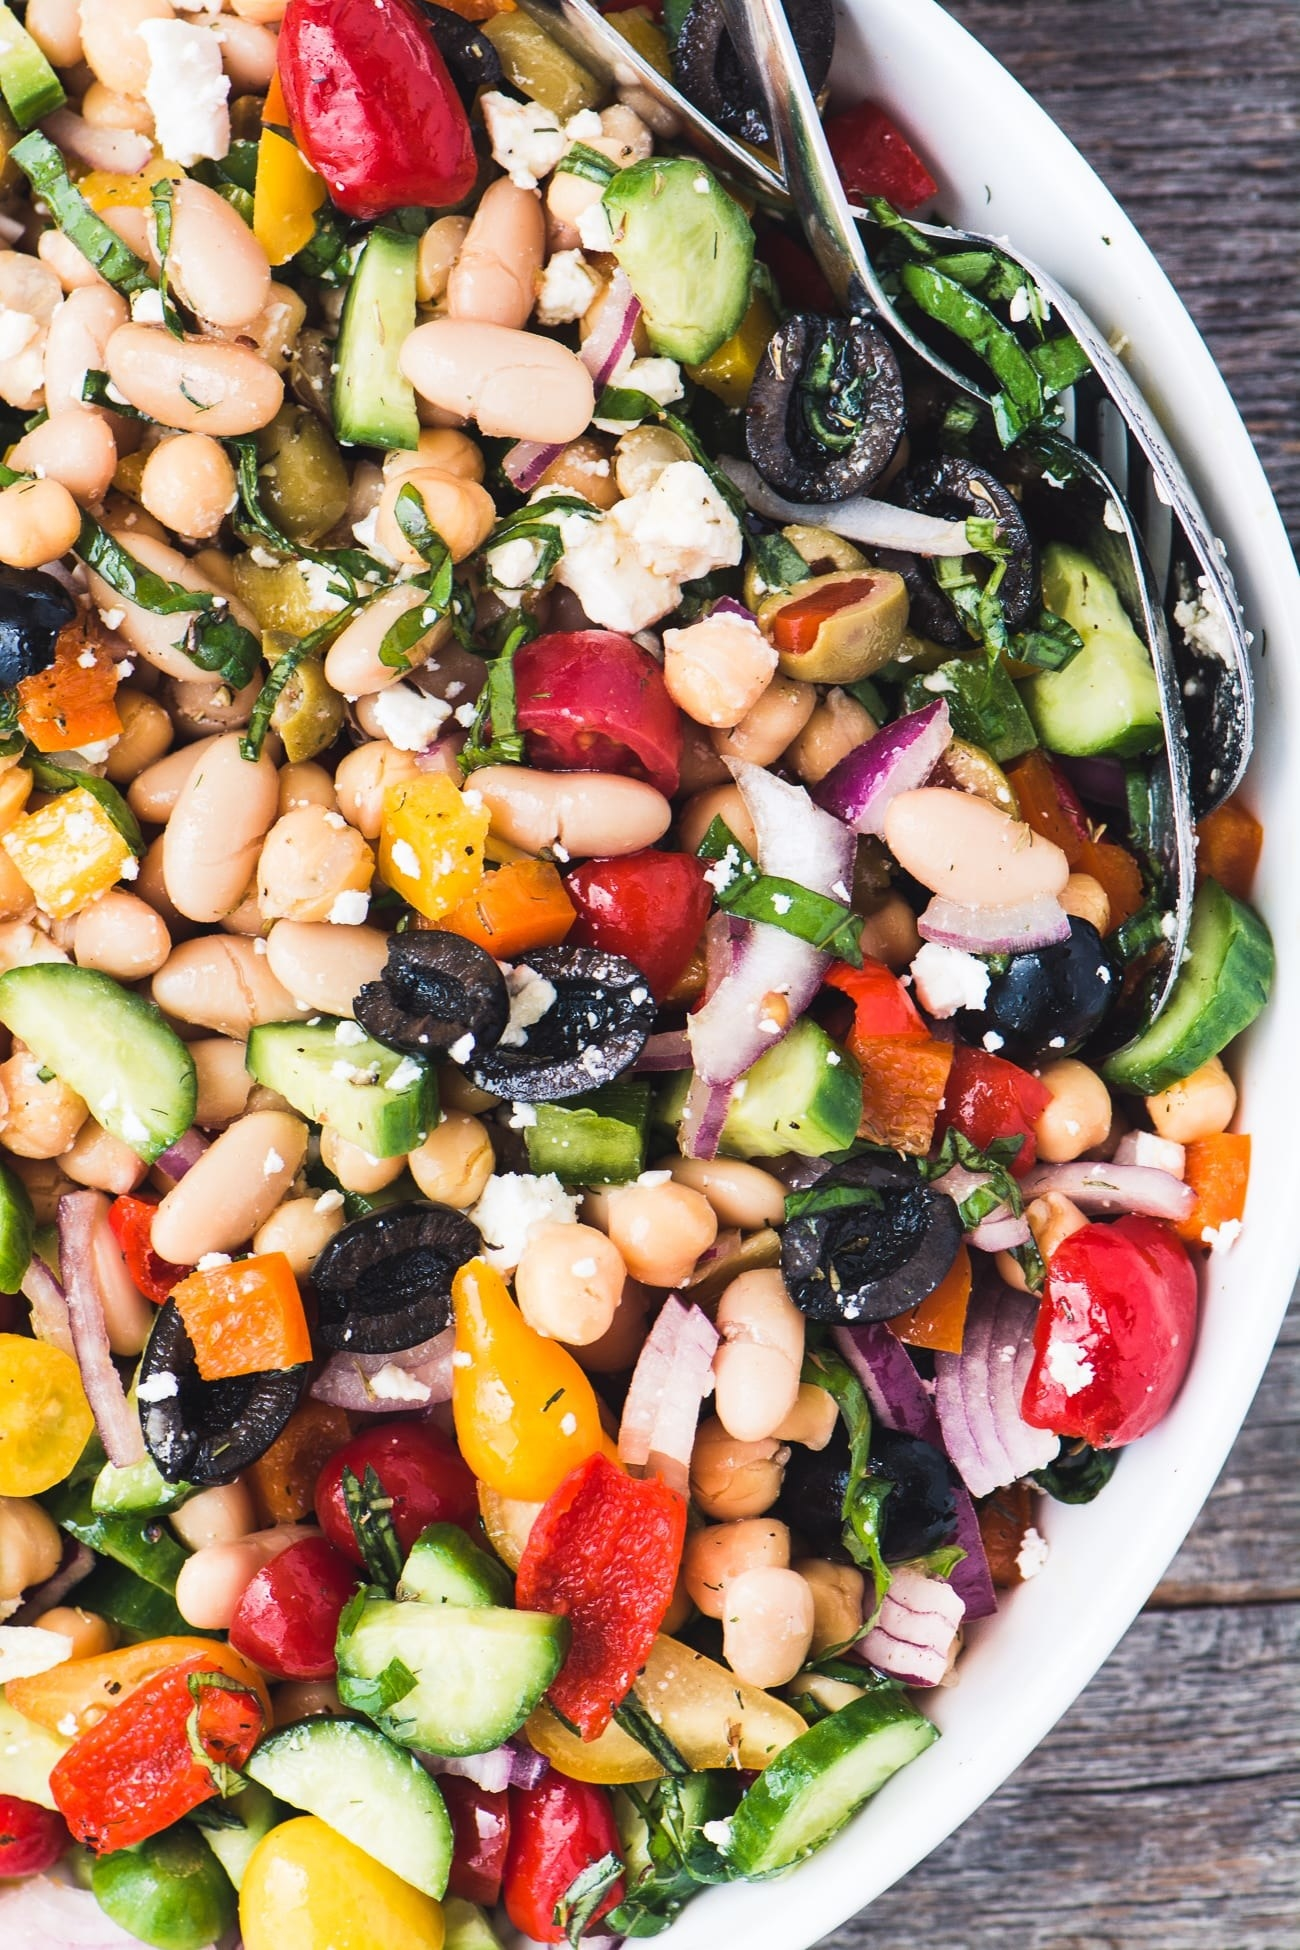 A salad with tomatoes, cucumber, white beans, red onions, and olives.